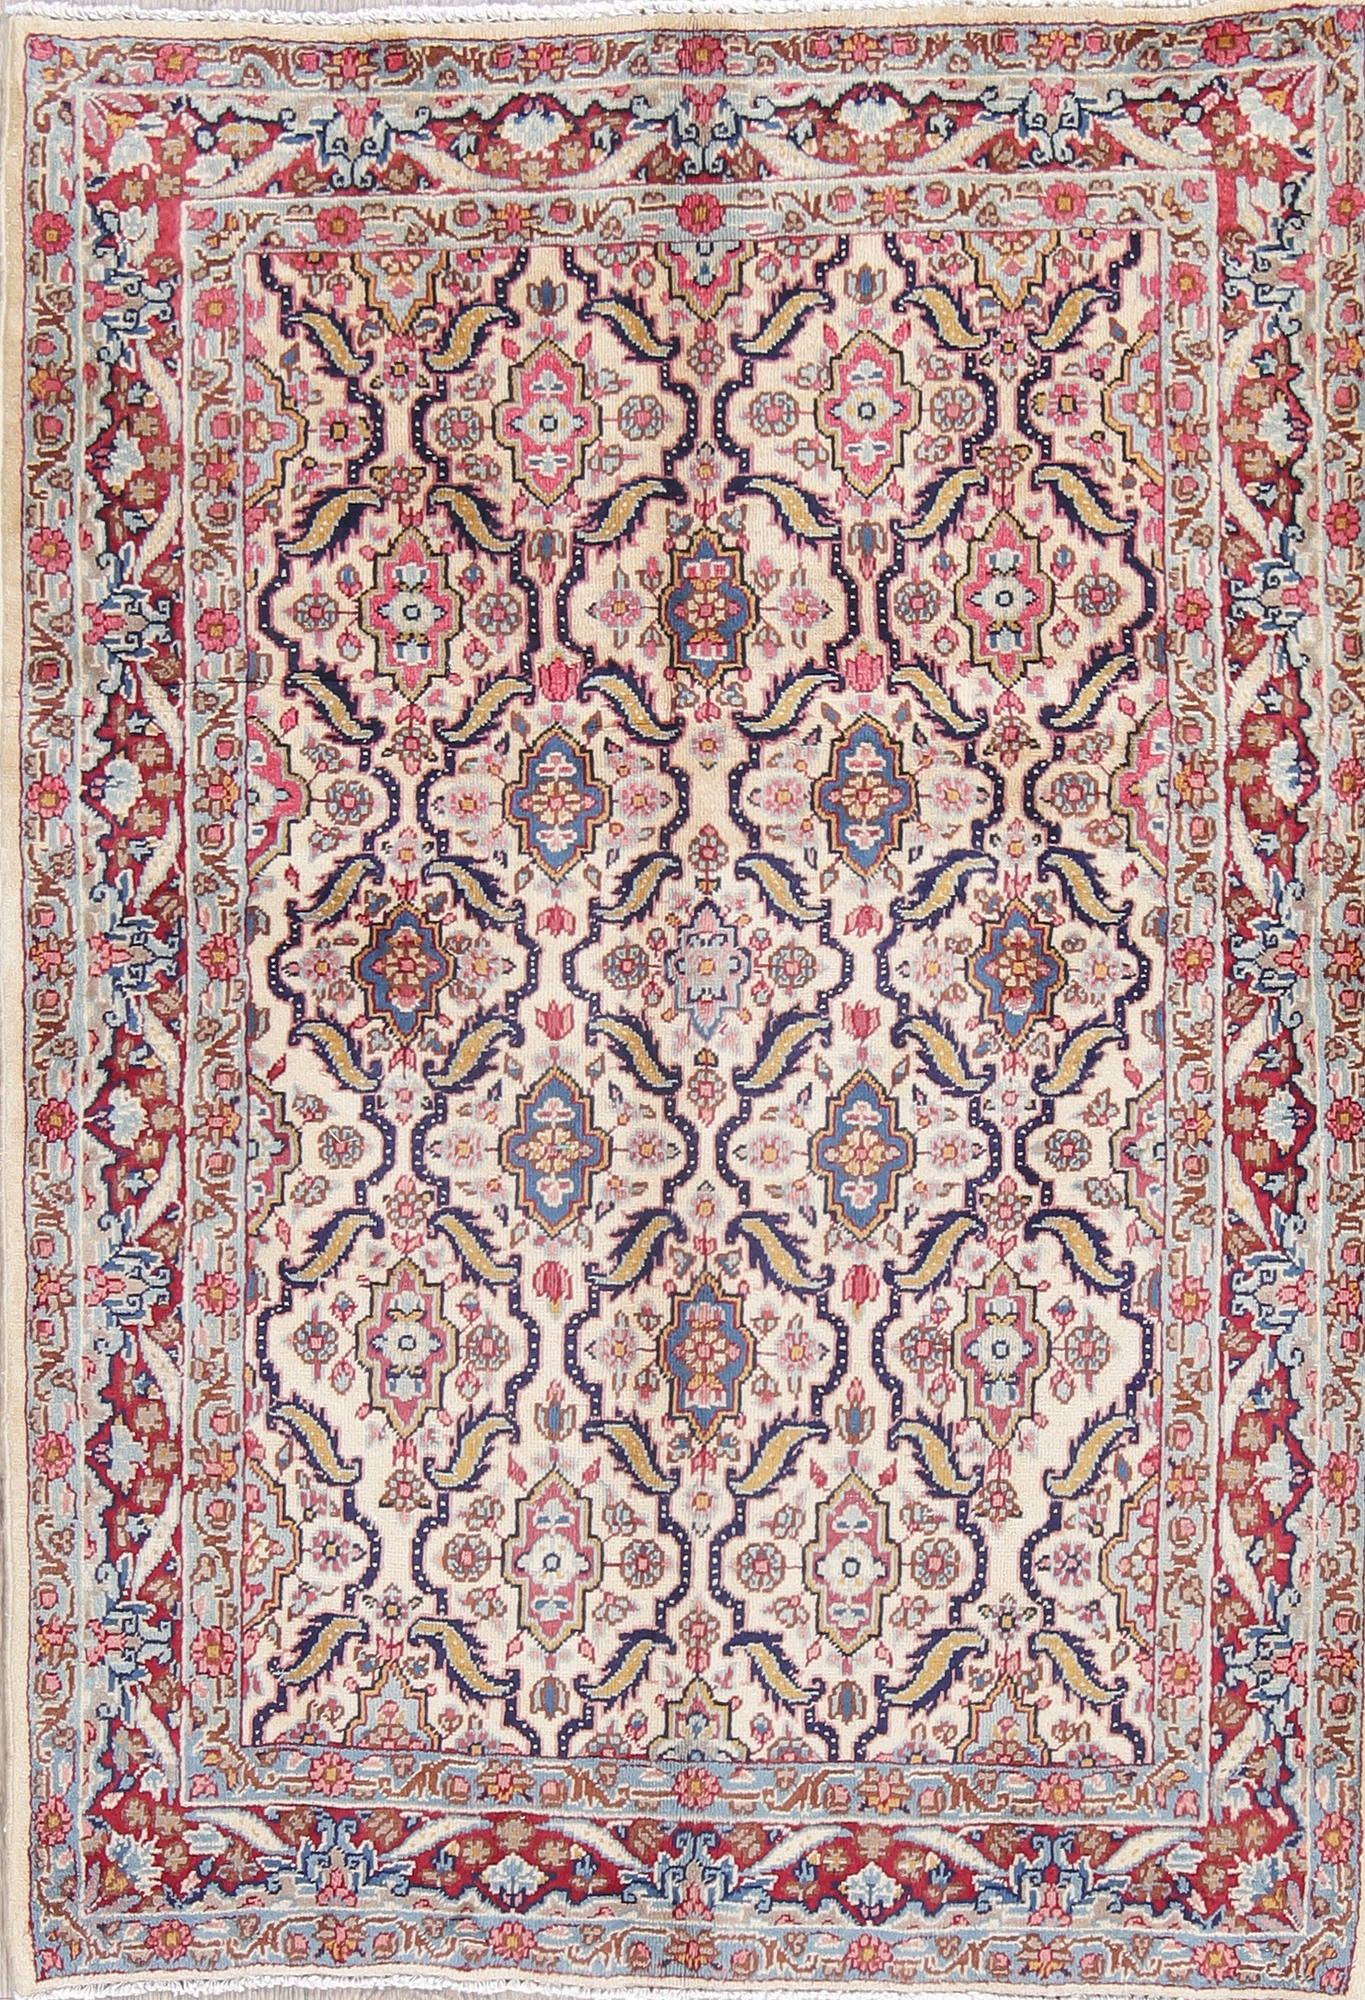 All-Over Ivory Floral Tabriz Persian Hand-Knotted 3x5 Wool Rug